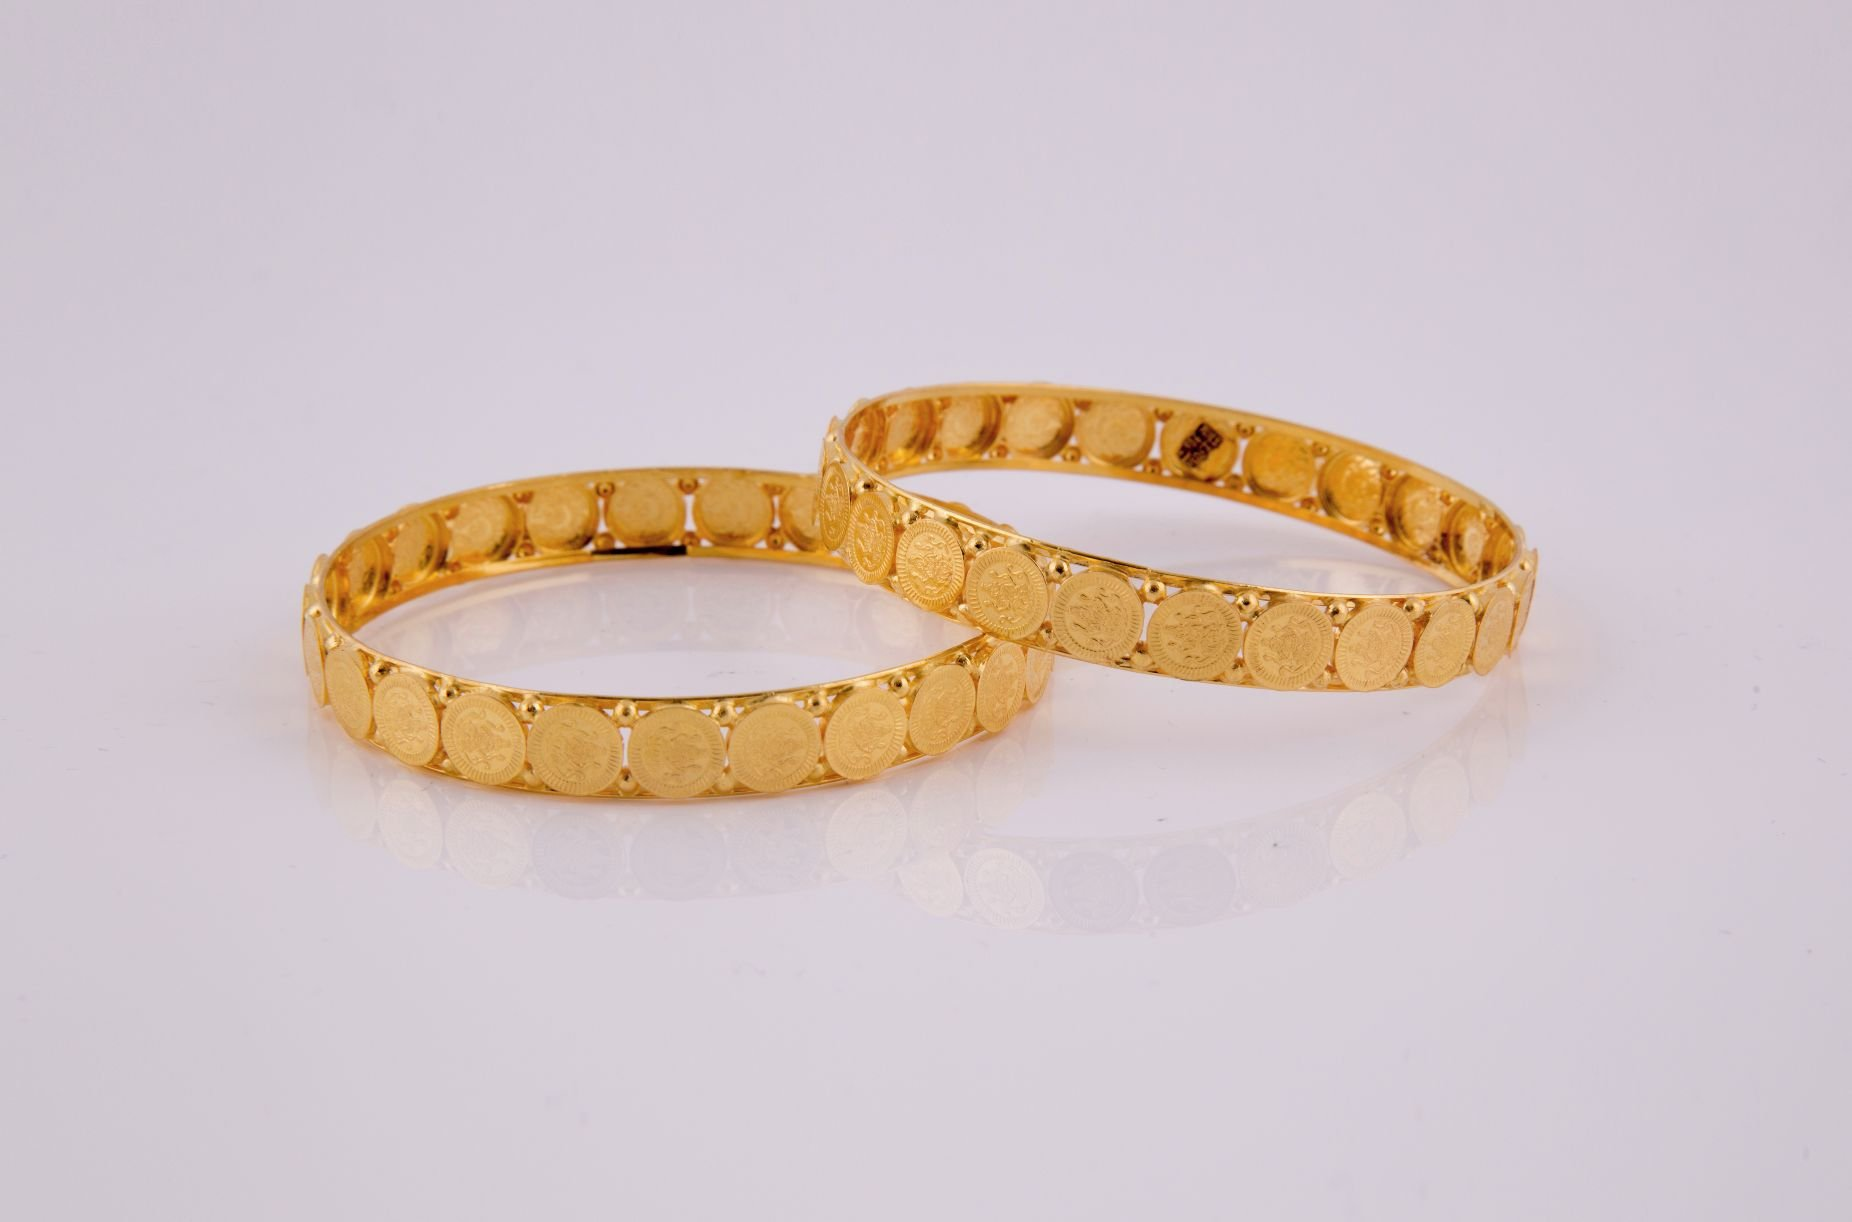 bangle fashion ecuatwitt bracelets women bracelet plain jewelry gold for bangles